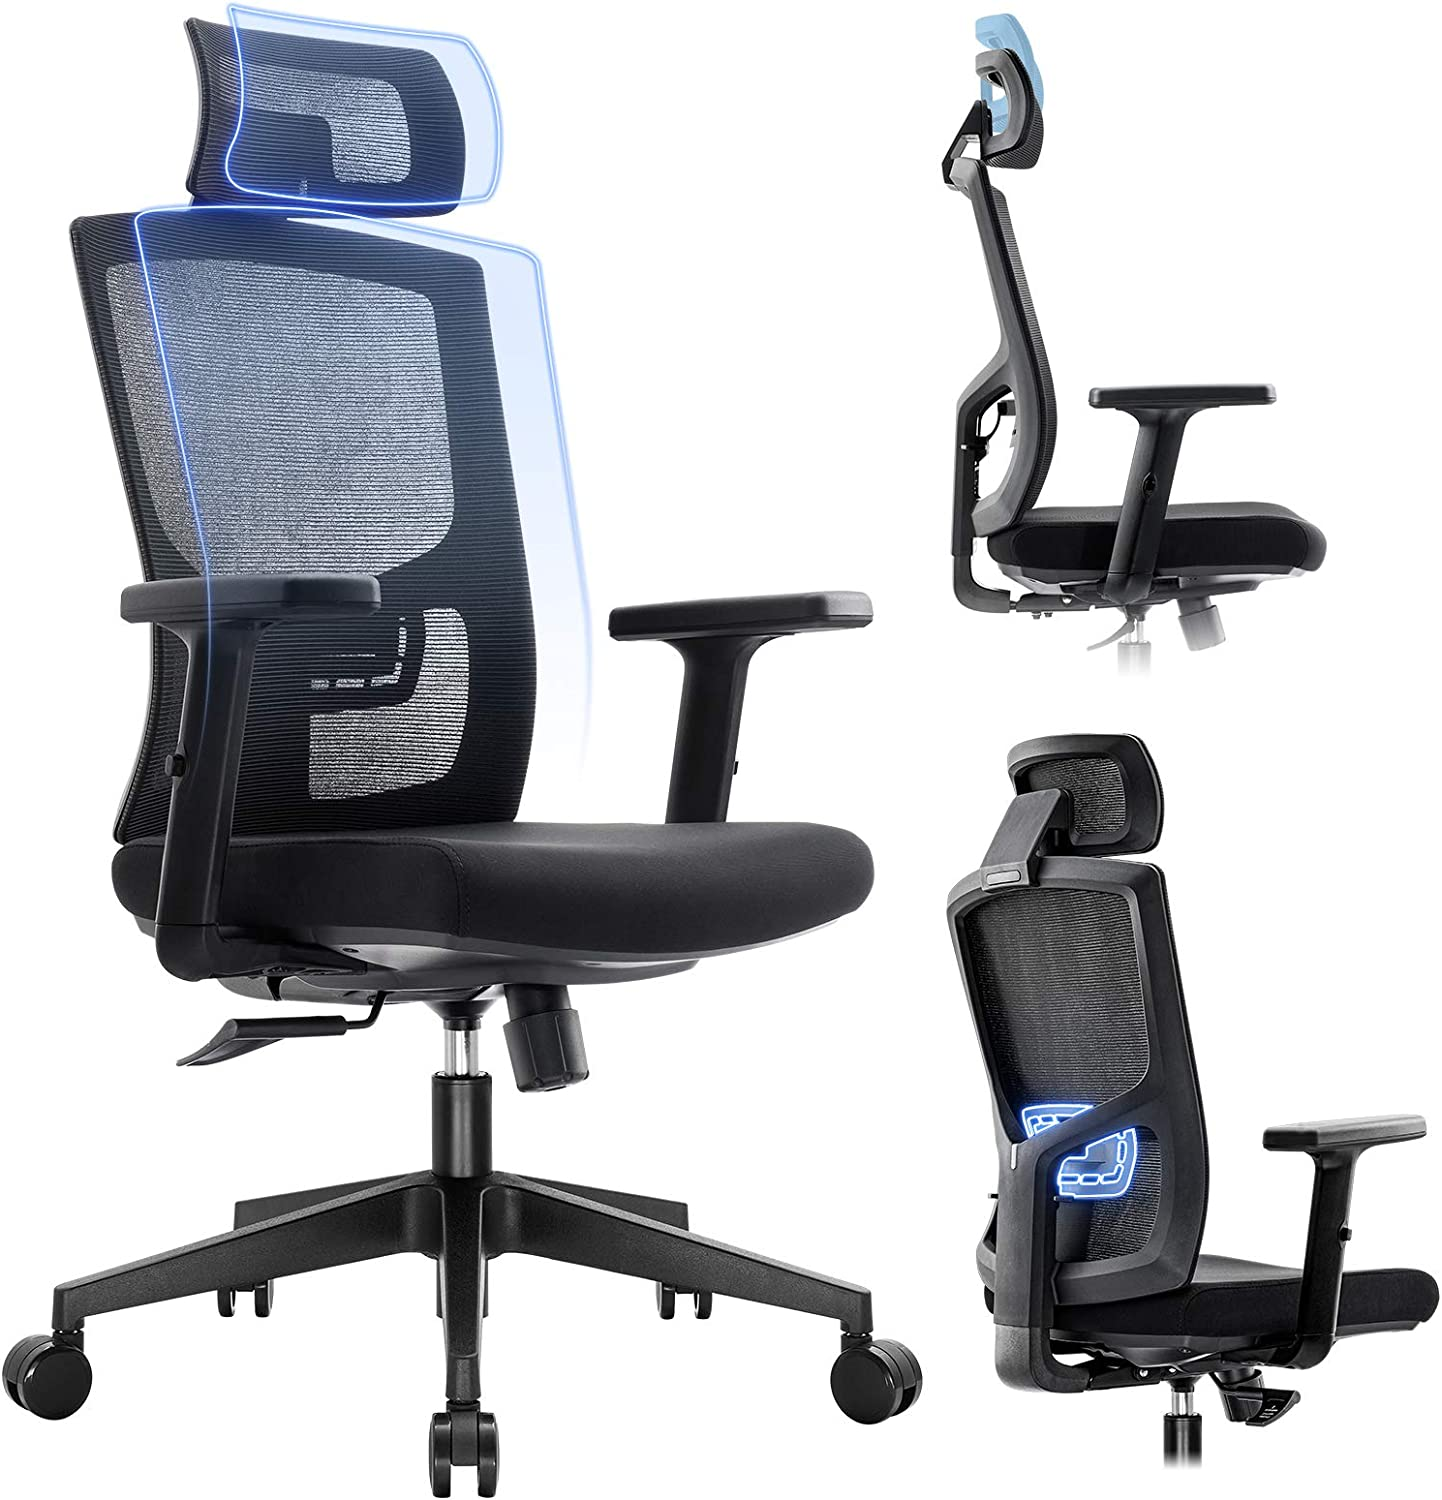 Komene Ergonomic Mesh Office Chair - High Japan Maker New Back with Desk A Limited time trial price